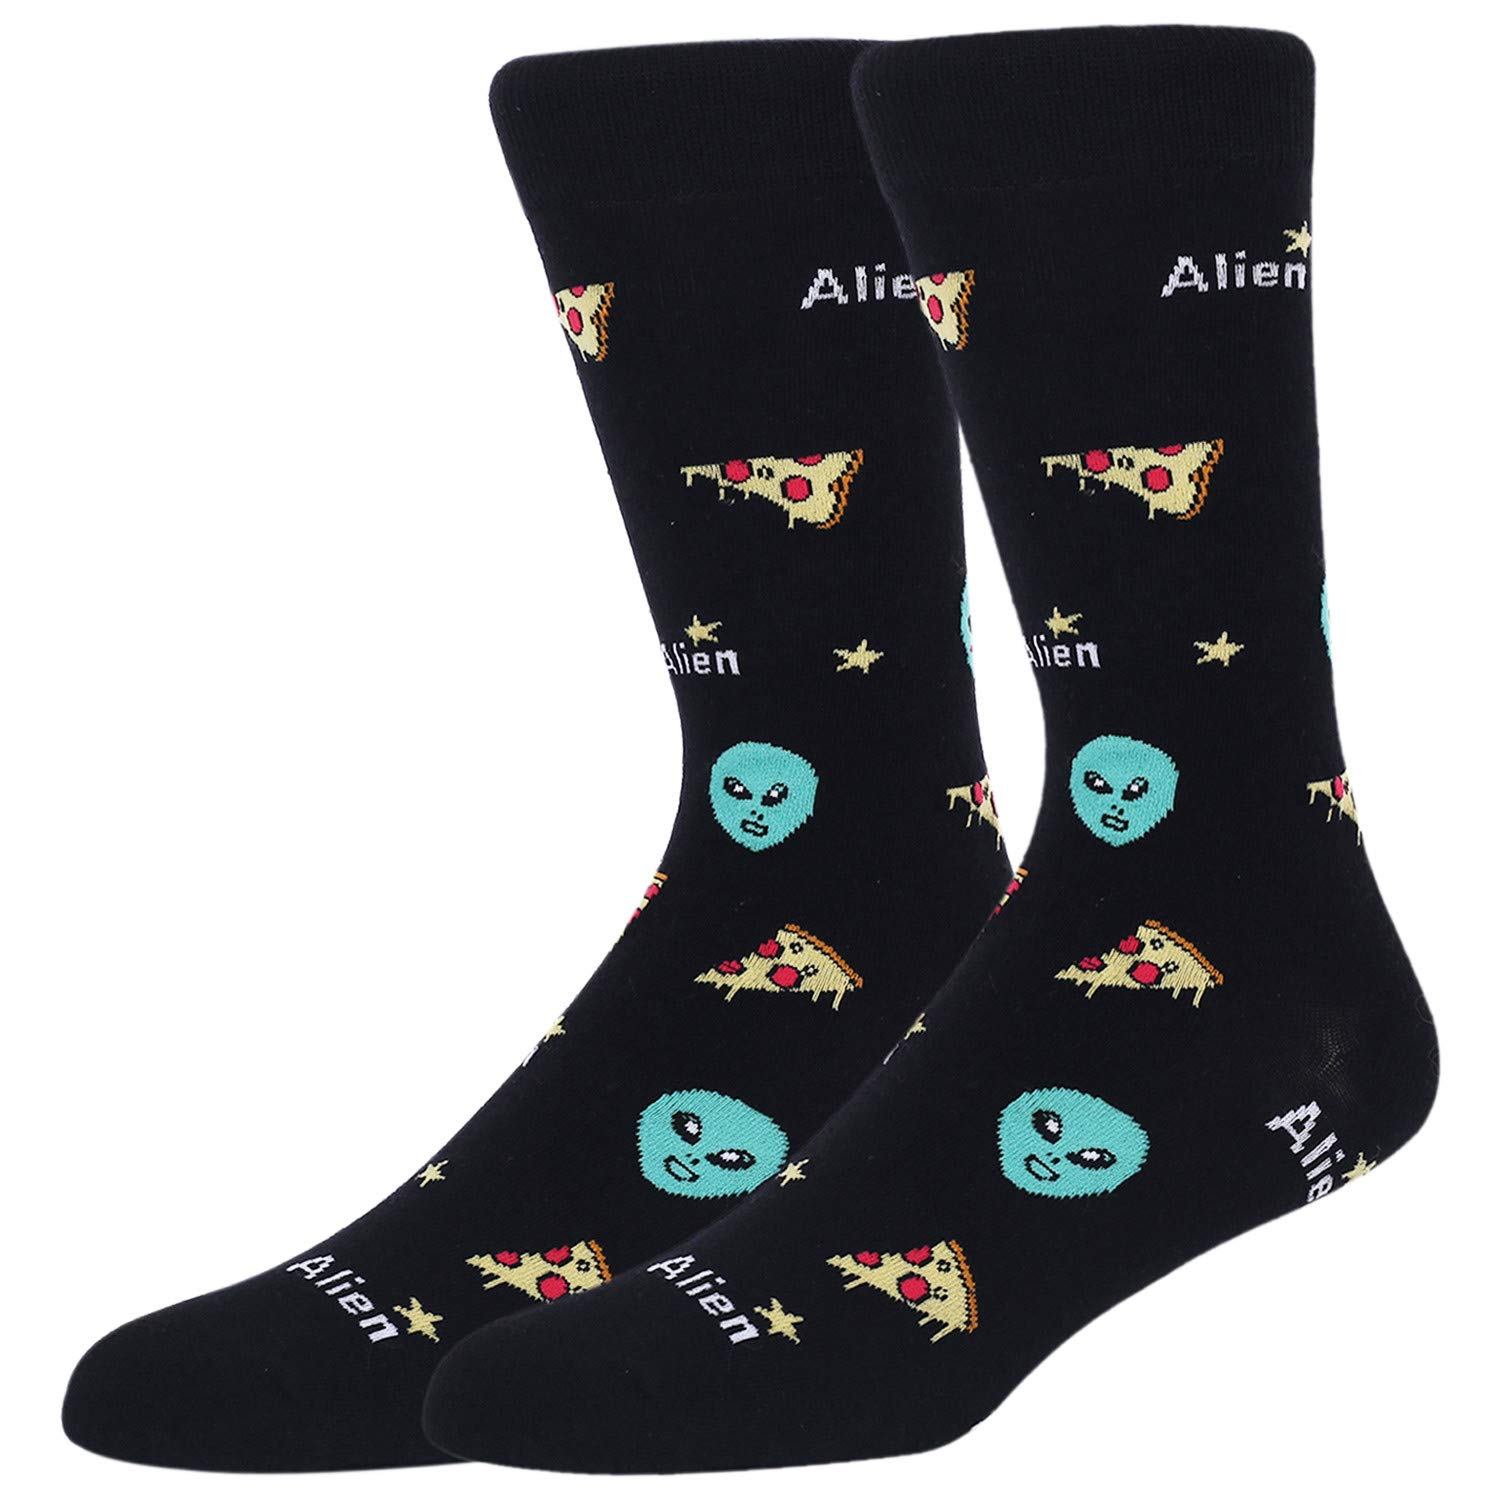 Mens Space Novelty Crew Socks Funny Crazy Socks Alien Astronaut Planet Pizza Casual Socks